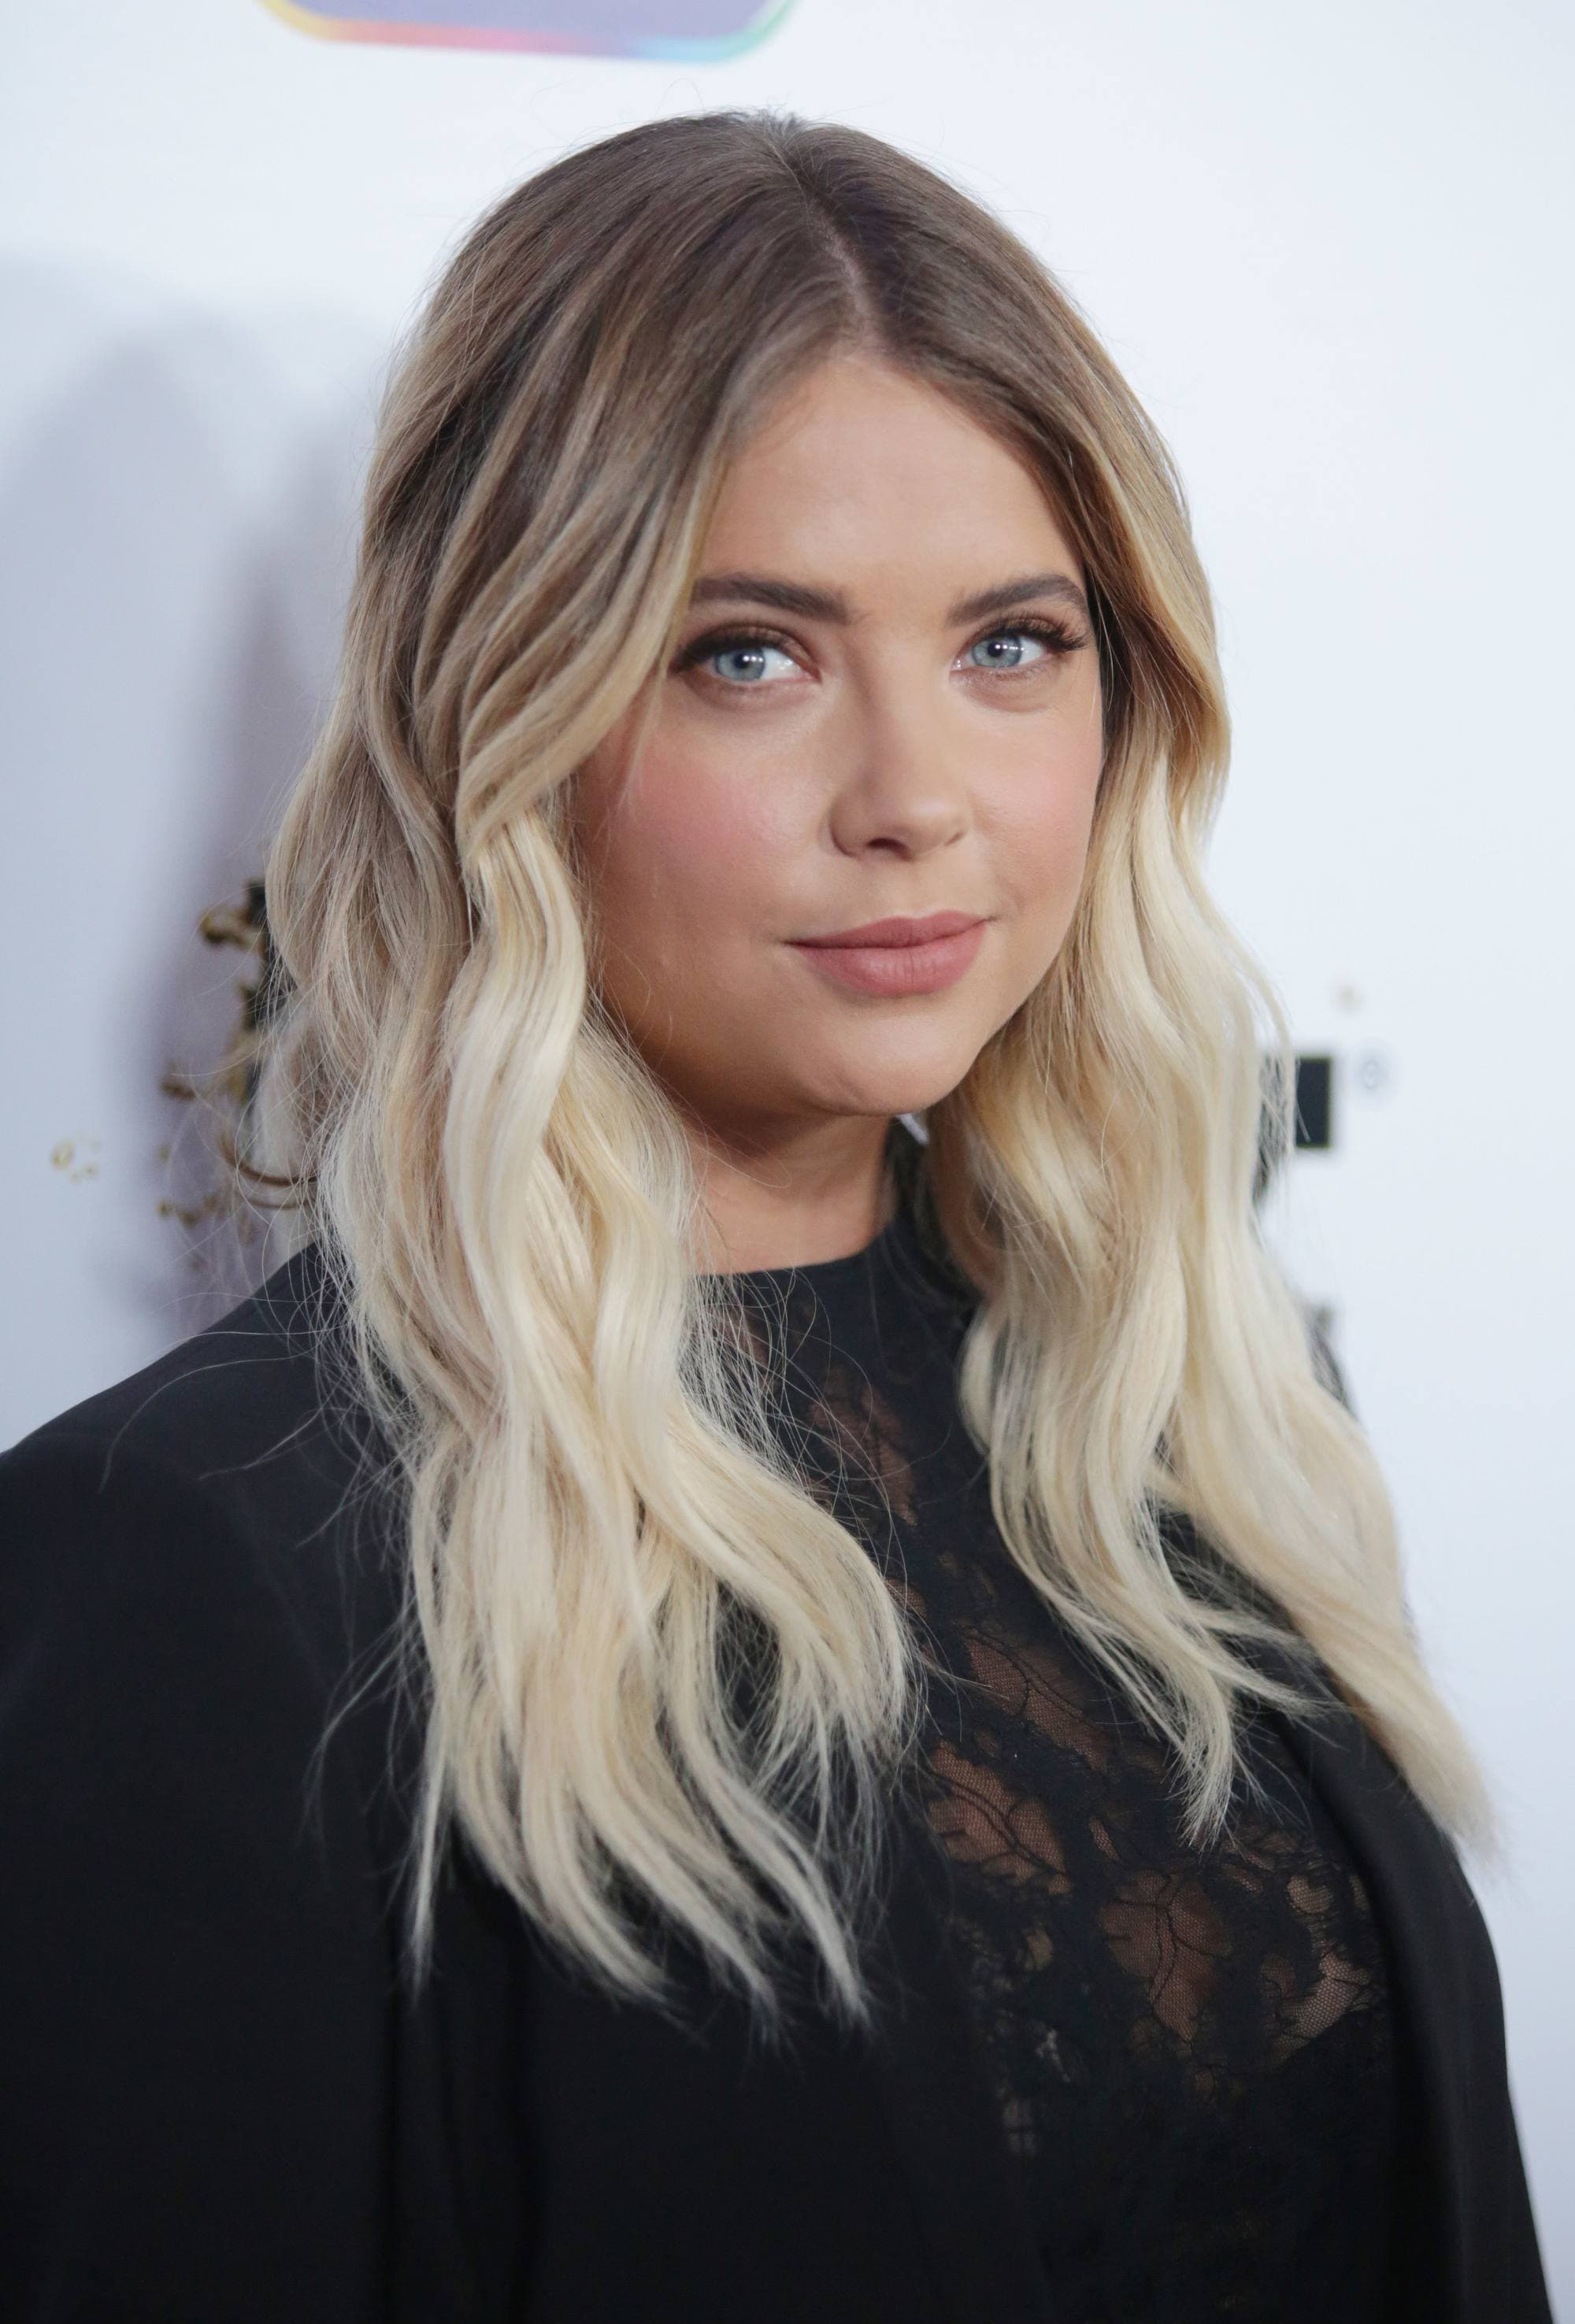 Ombre Hair Everything You Need To Know About The Colouring Trend